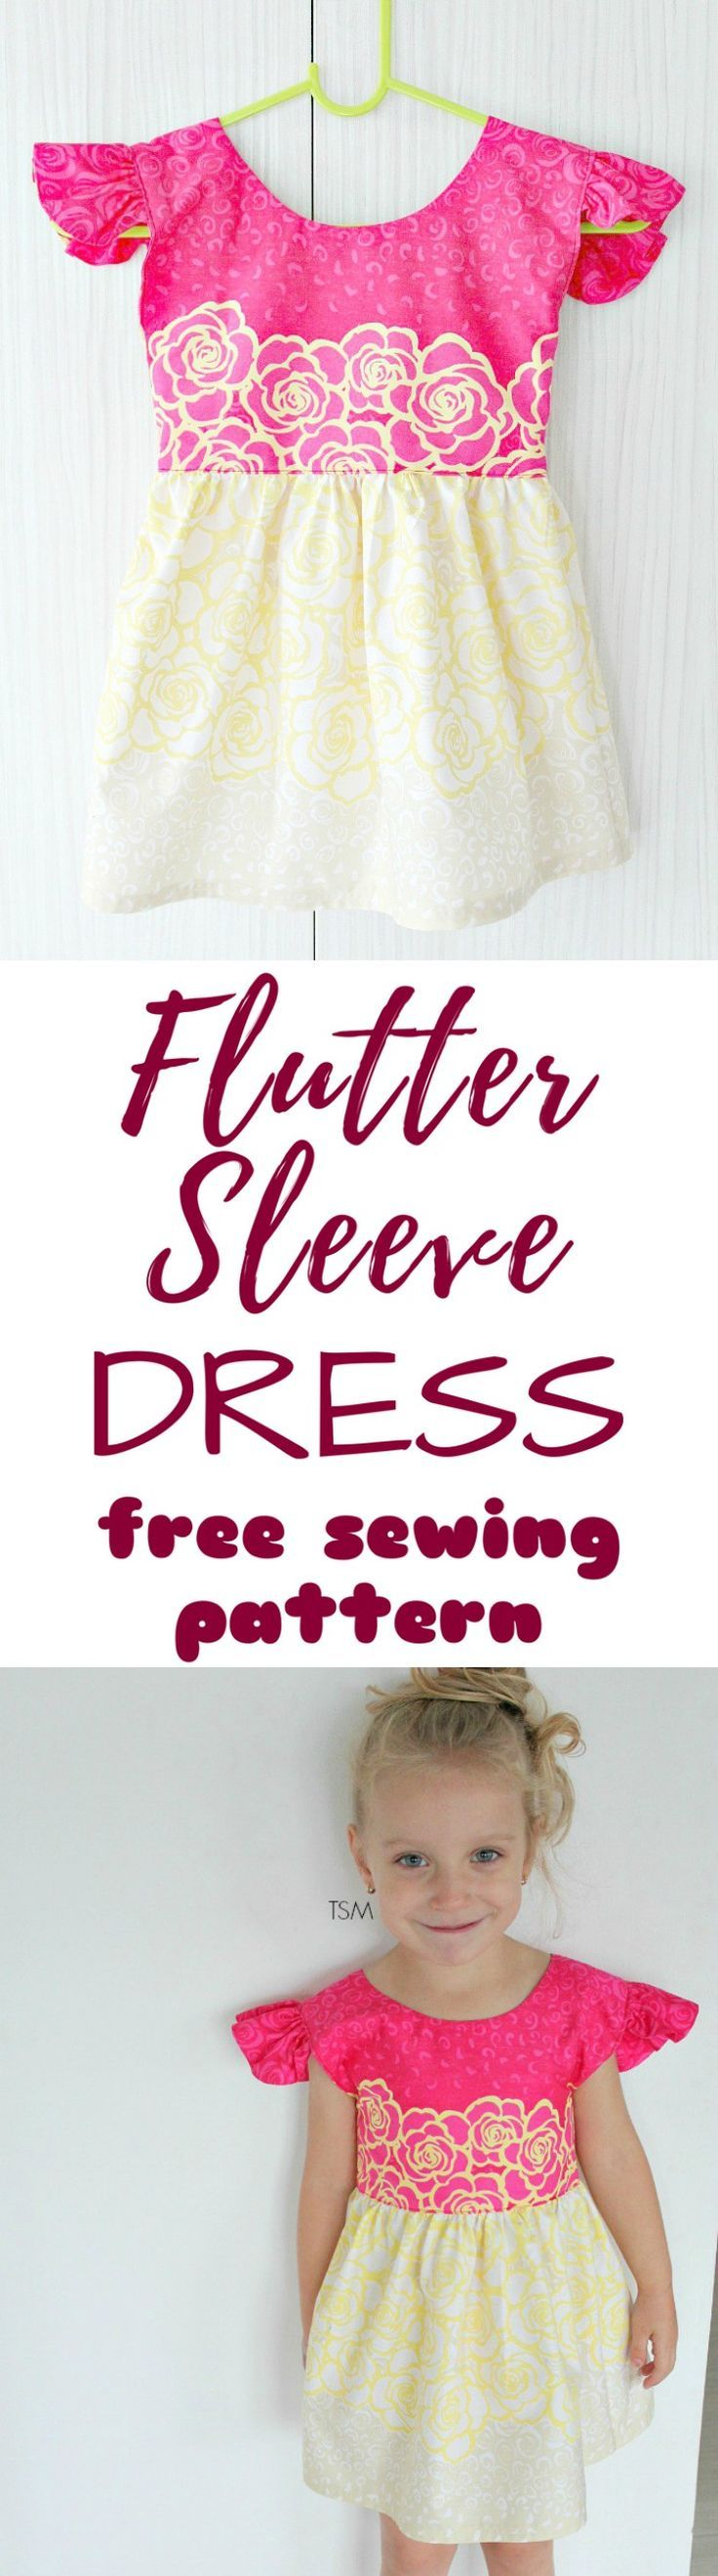 FLUTTER SLEEVE DRESS FREE SEWING PATTERN - Love sewing for little girls? Learn how to sew an adorable, sweet dress for a little girl using this easy to follow, step by step flutter sleeve dress tutorial.  #sewing #sewingproject #sewingpattern #sewingmachine #sewingblogger #sewingforbeginners #sewingforkids #freesewingpatterns